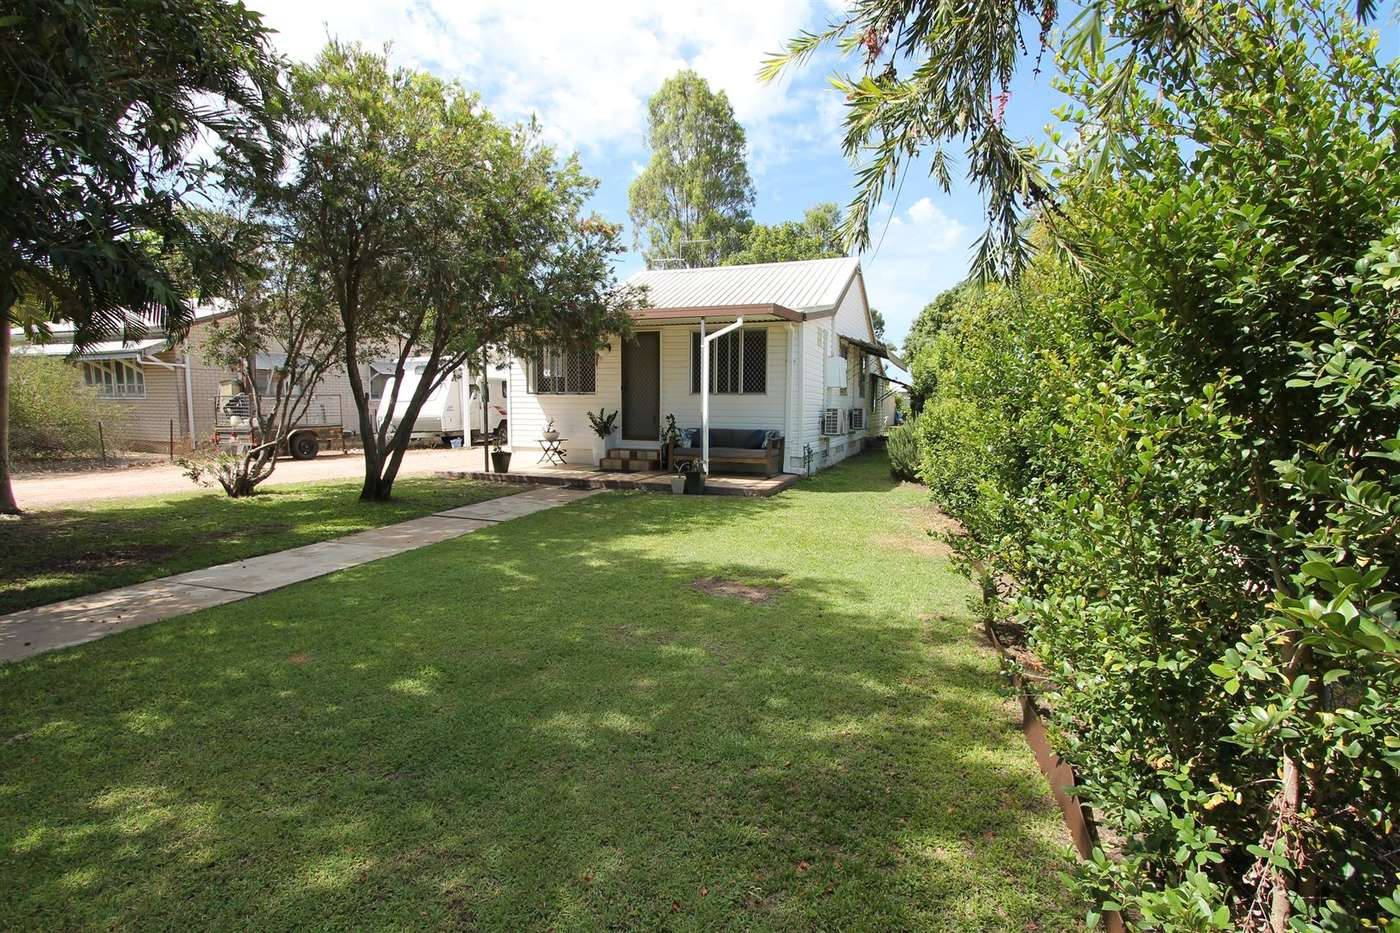 Main view of Homely house listing, 52 Gibson Street, Ayr, QLD 4807